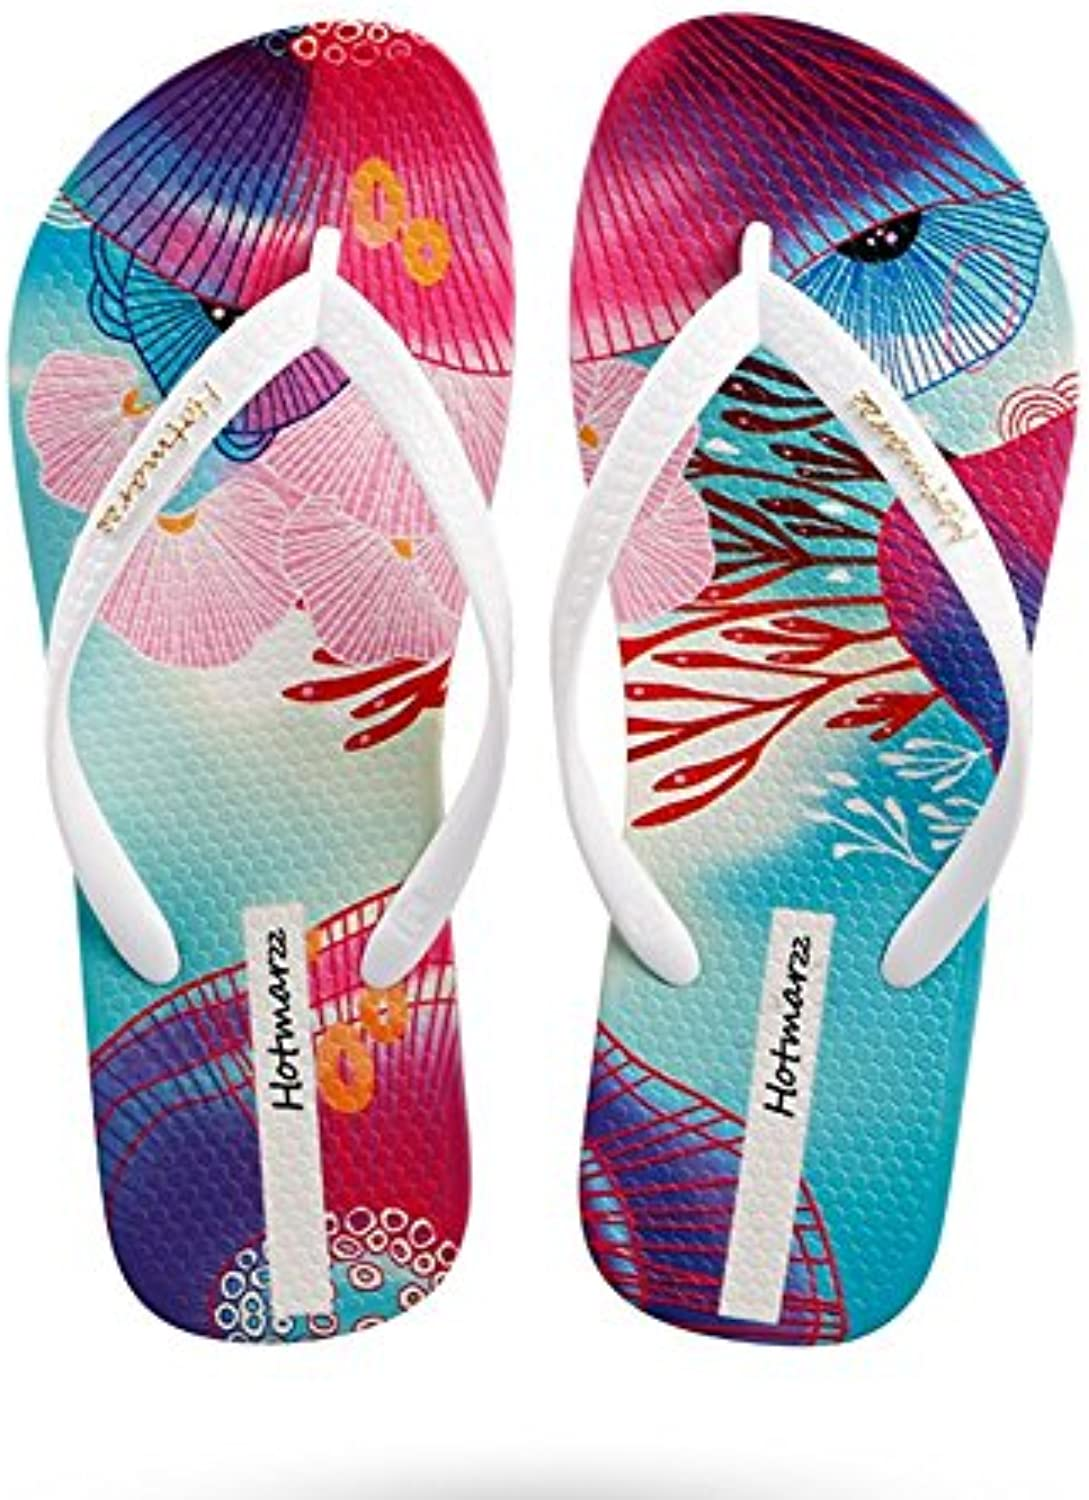 Sandals Chanclas Havaianas para Mujer Beach Summer Slipper, 35